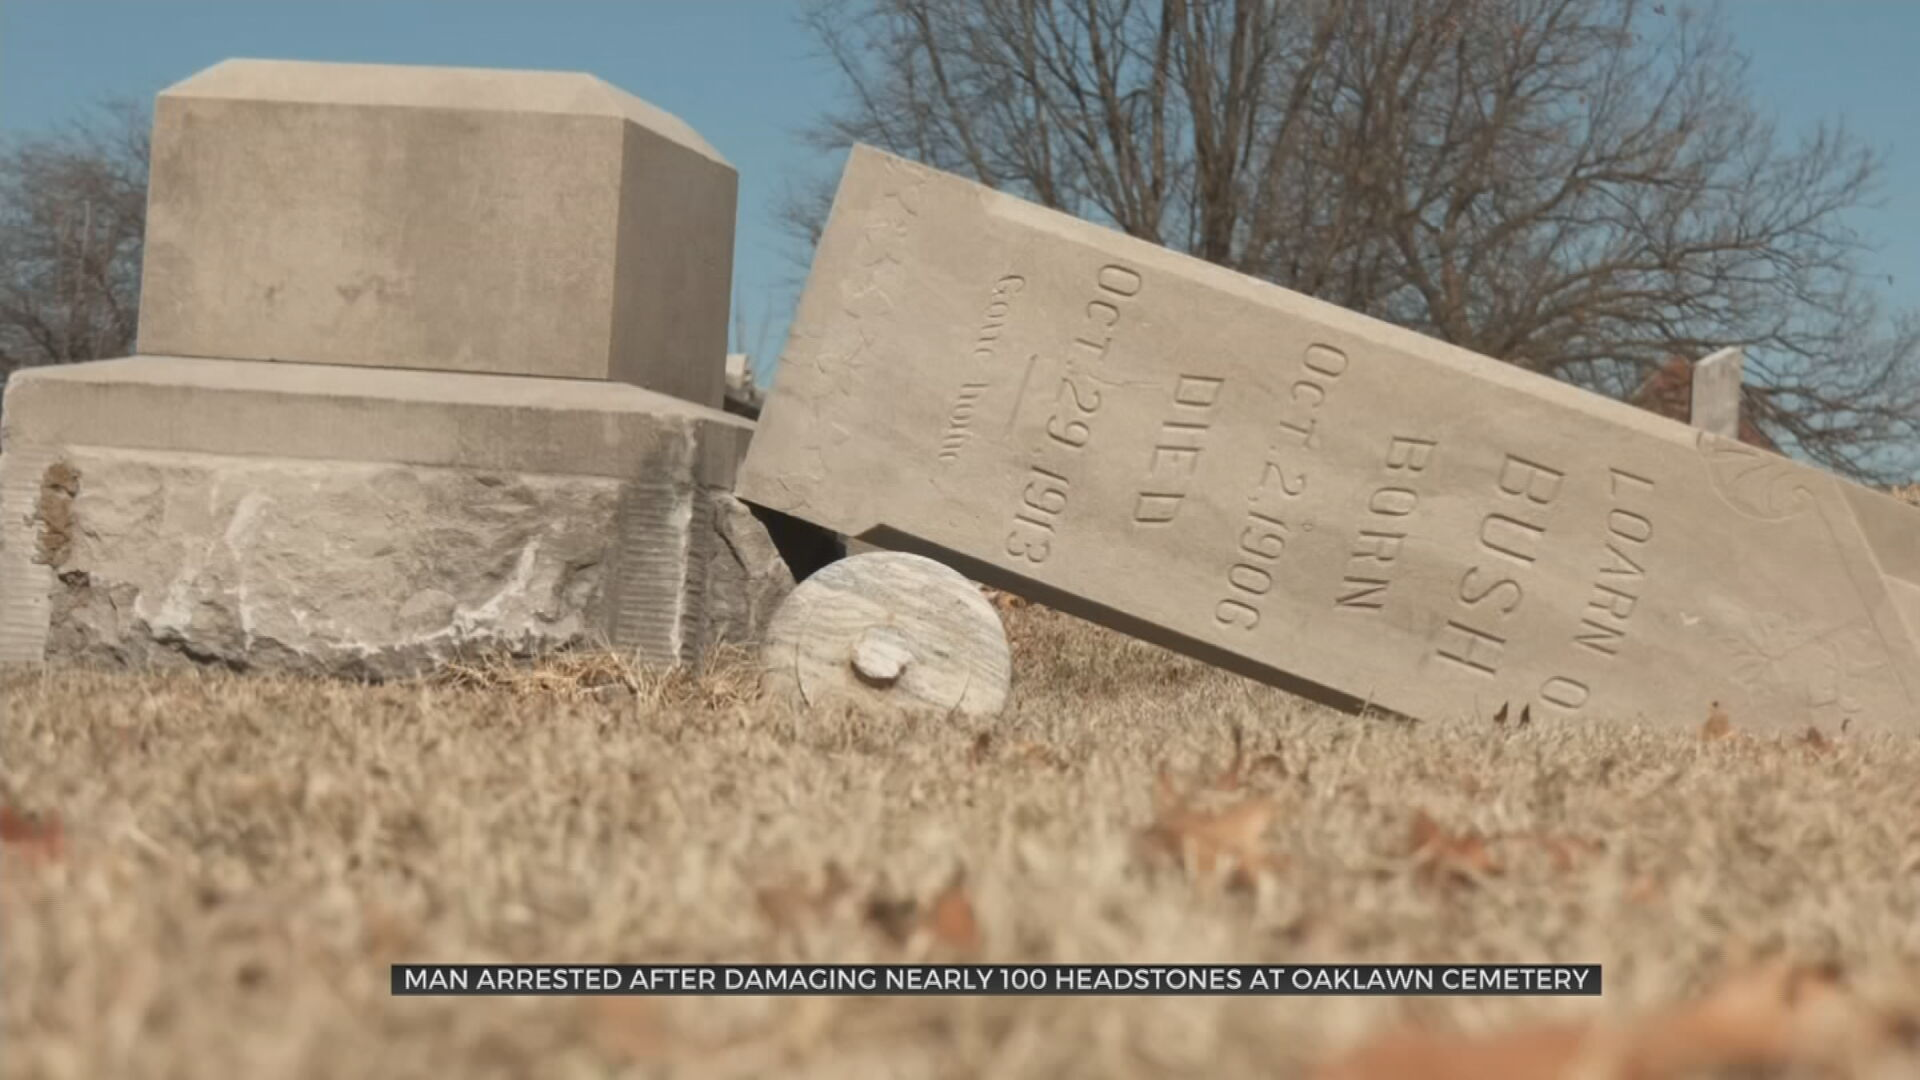 City Says At Least 60 Headstones Damaged At Oaklawn Cemetery, Suspect Arrested